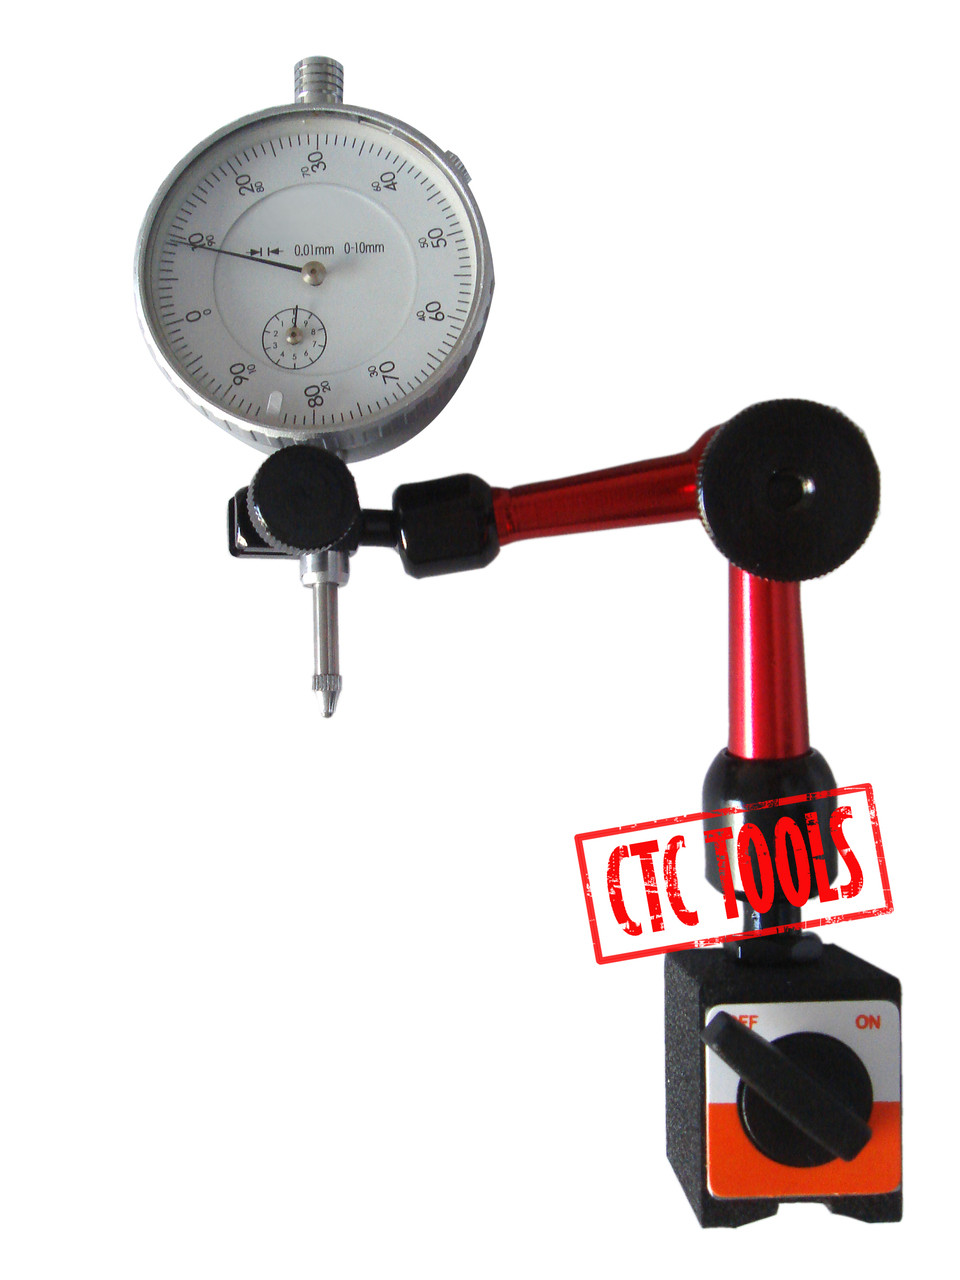 Hydraulic Arm With Magnetic Base Indicator : Dial indicator gauge hydraulic magnetic base d ctc